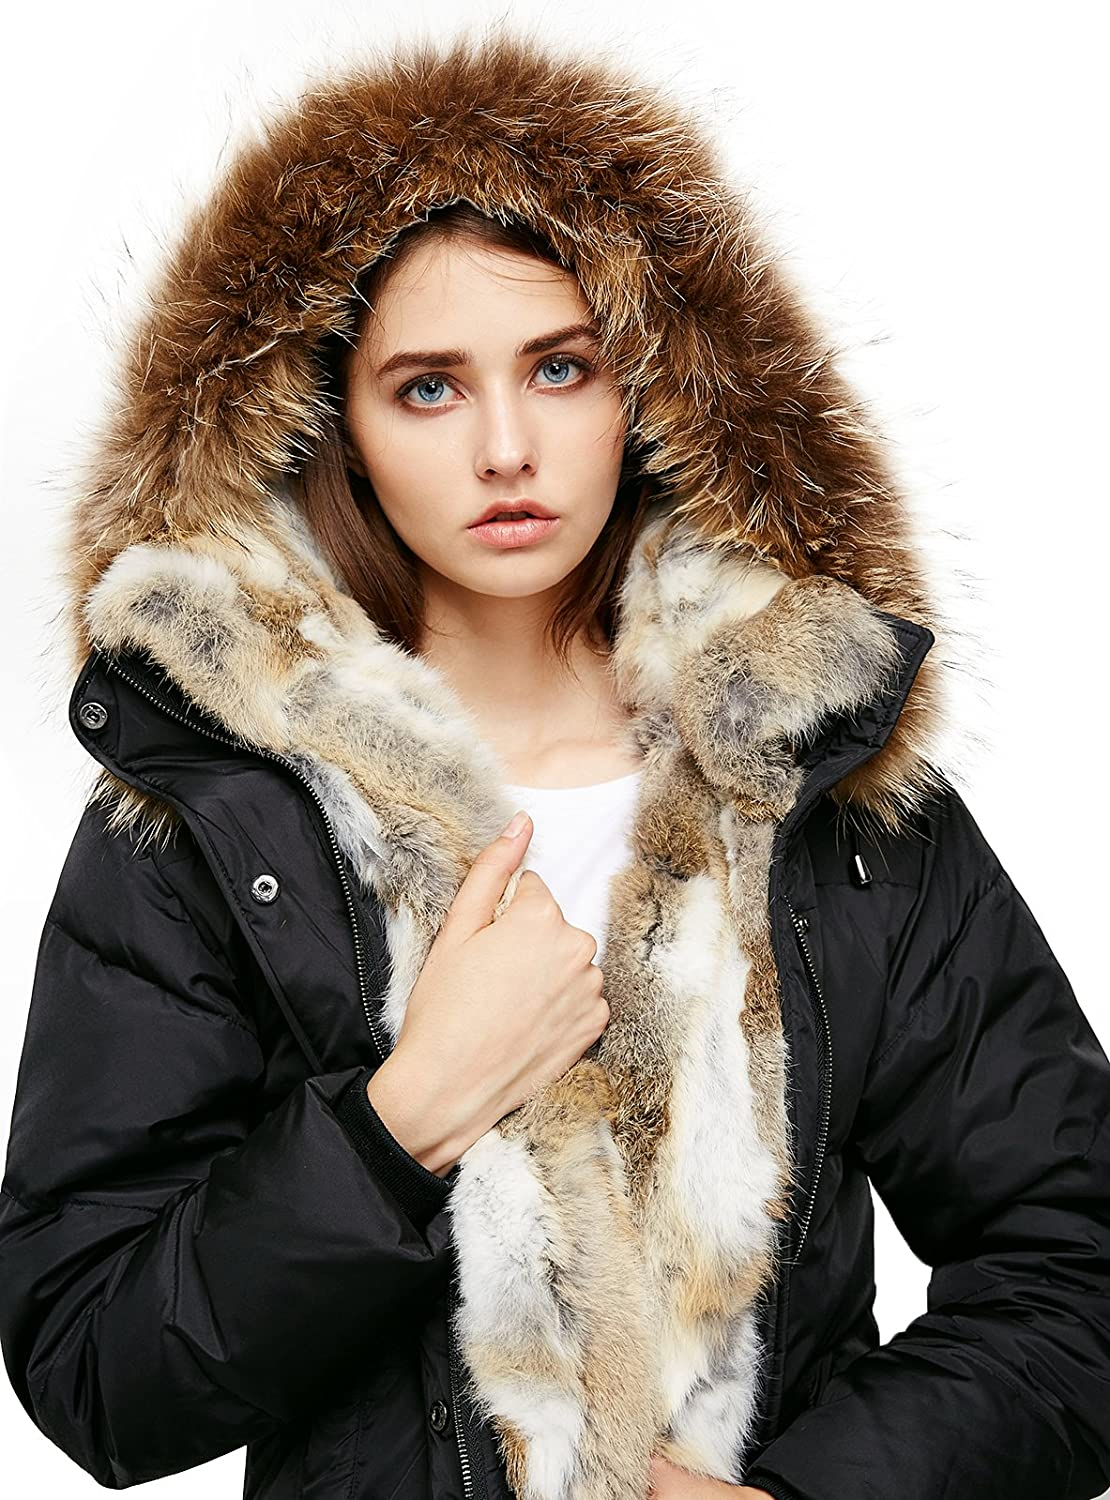 Escalier Women's Winter Down Coat With Geniune Raccoon Fur Hooded Parka FS-188